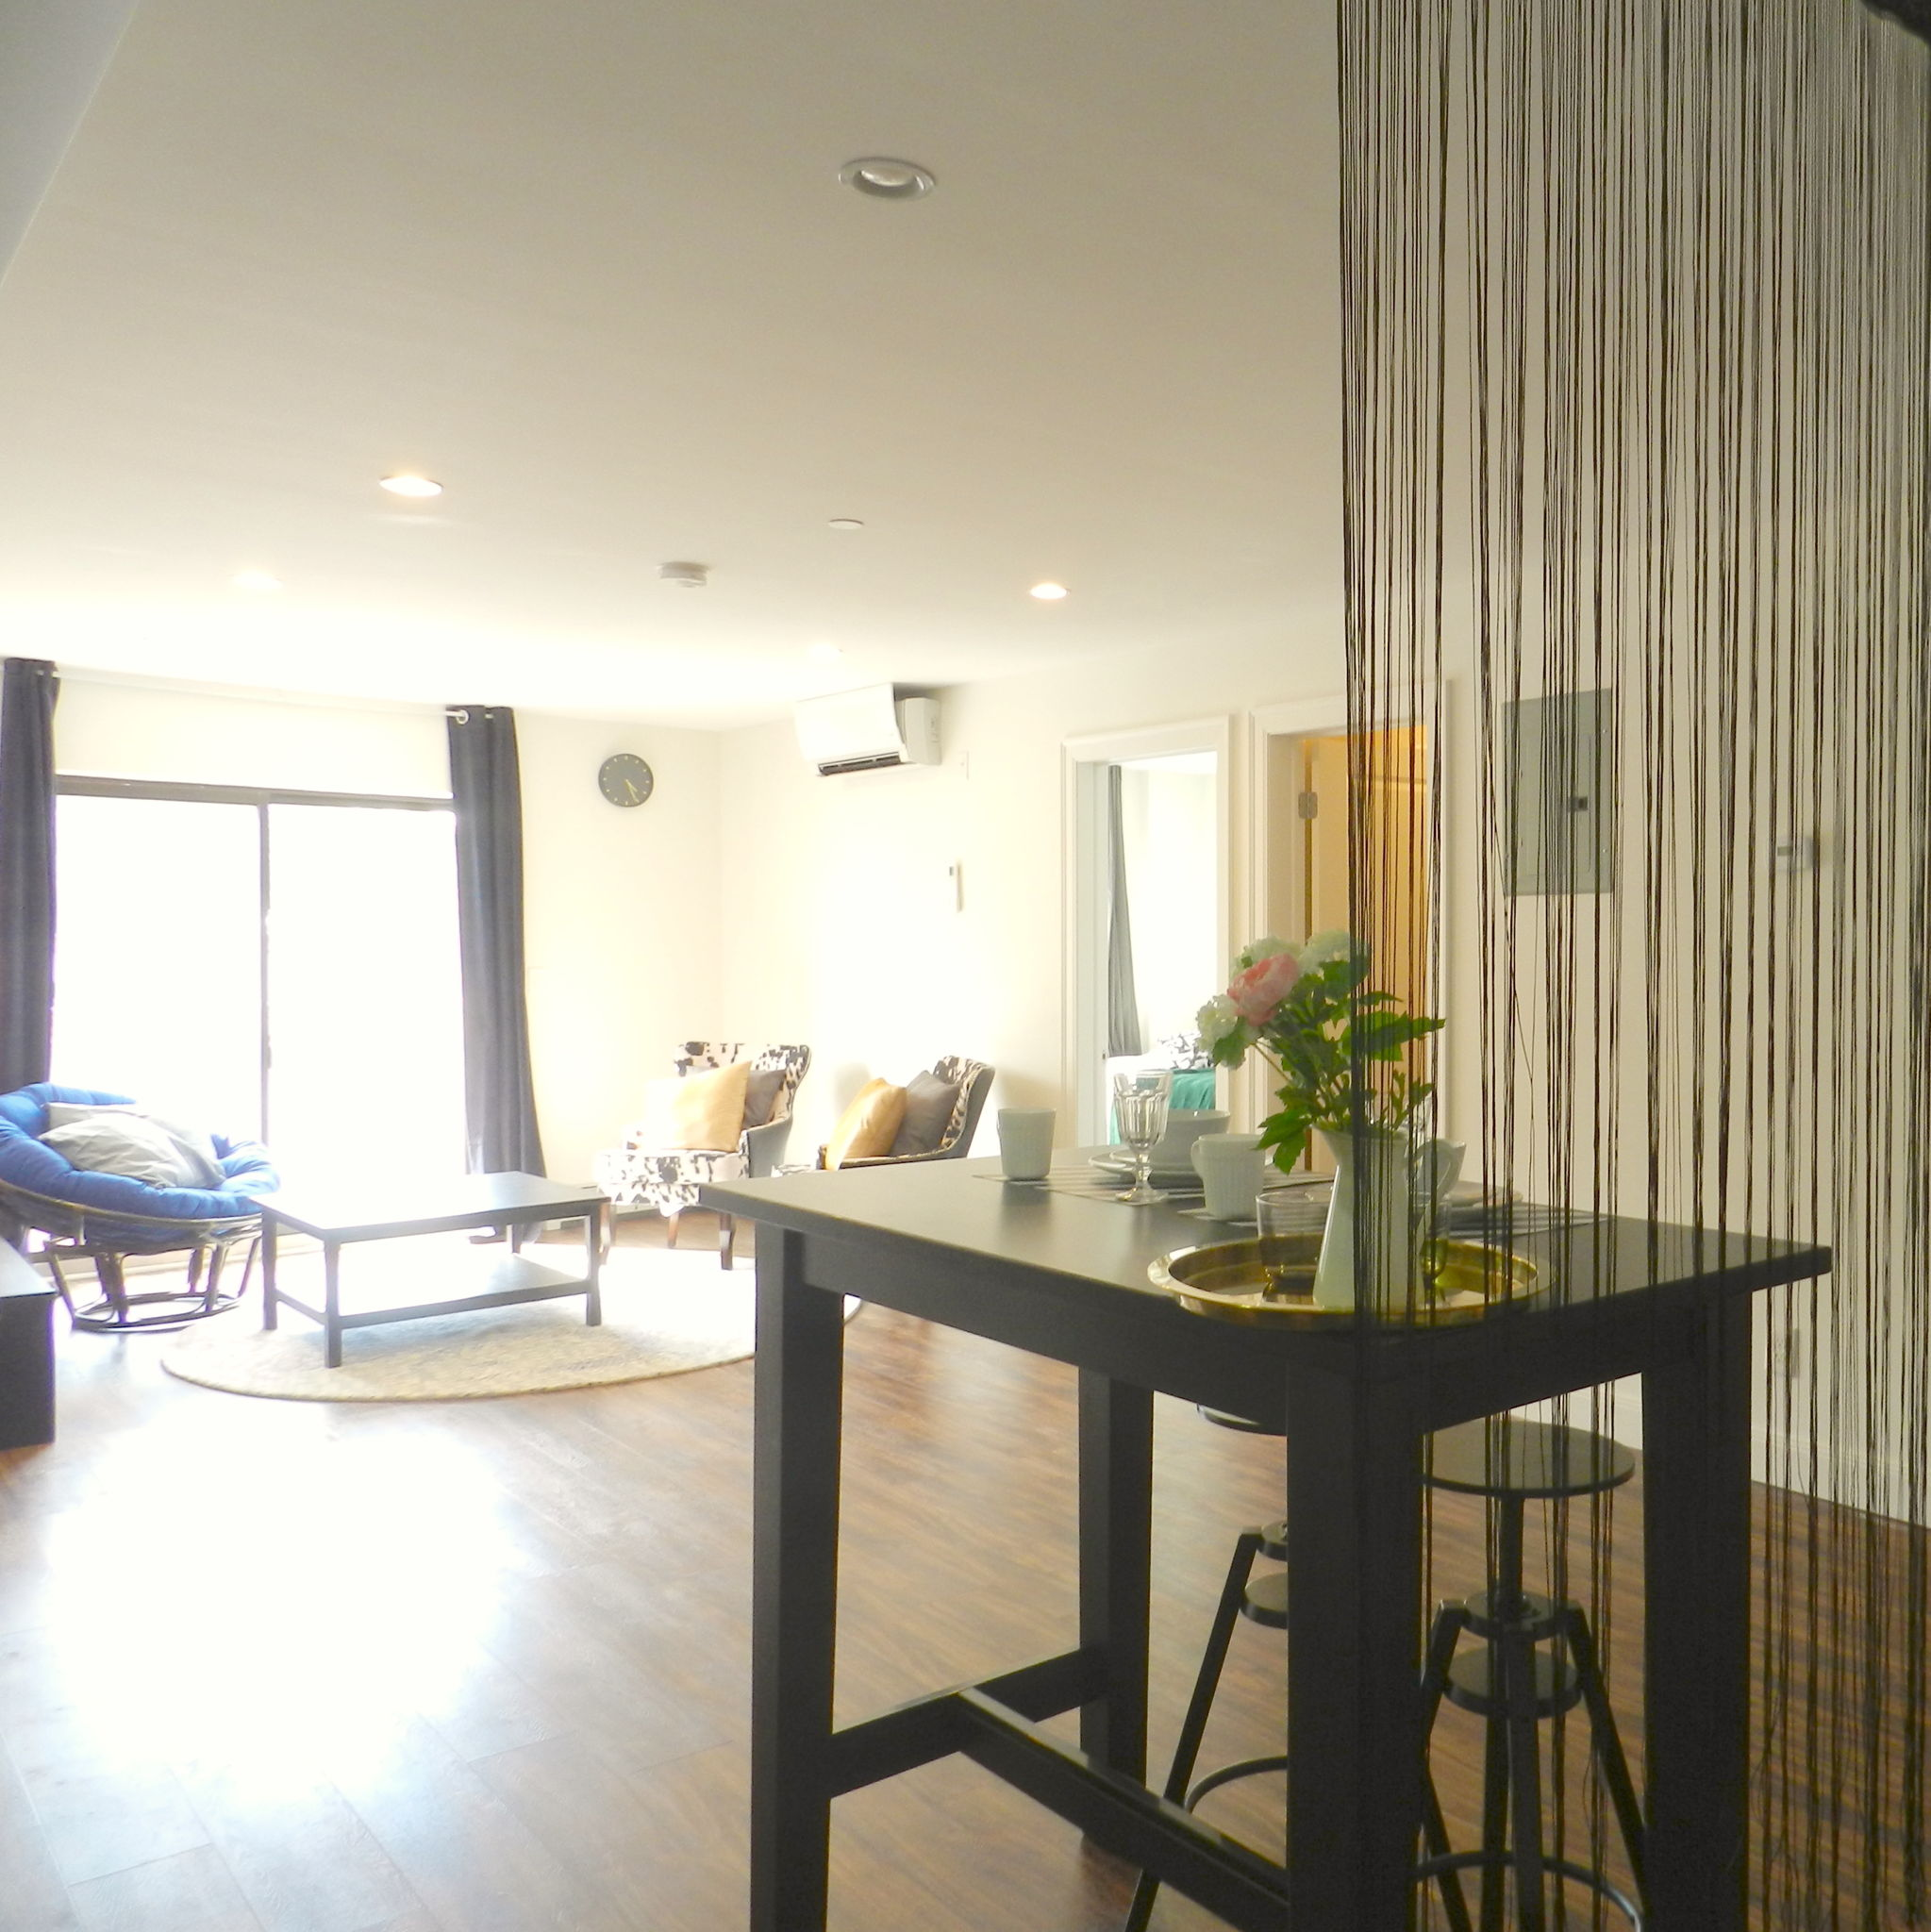 About CrossOver Coliving photo